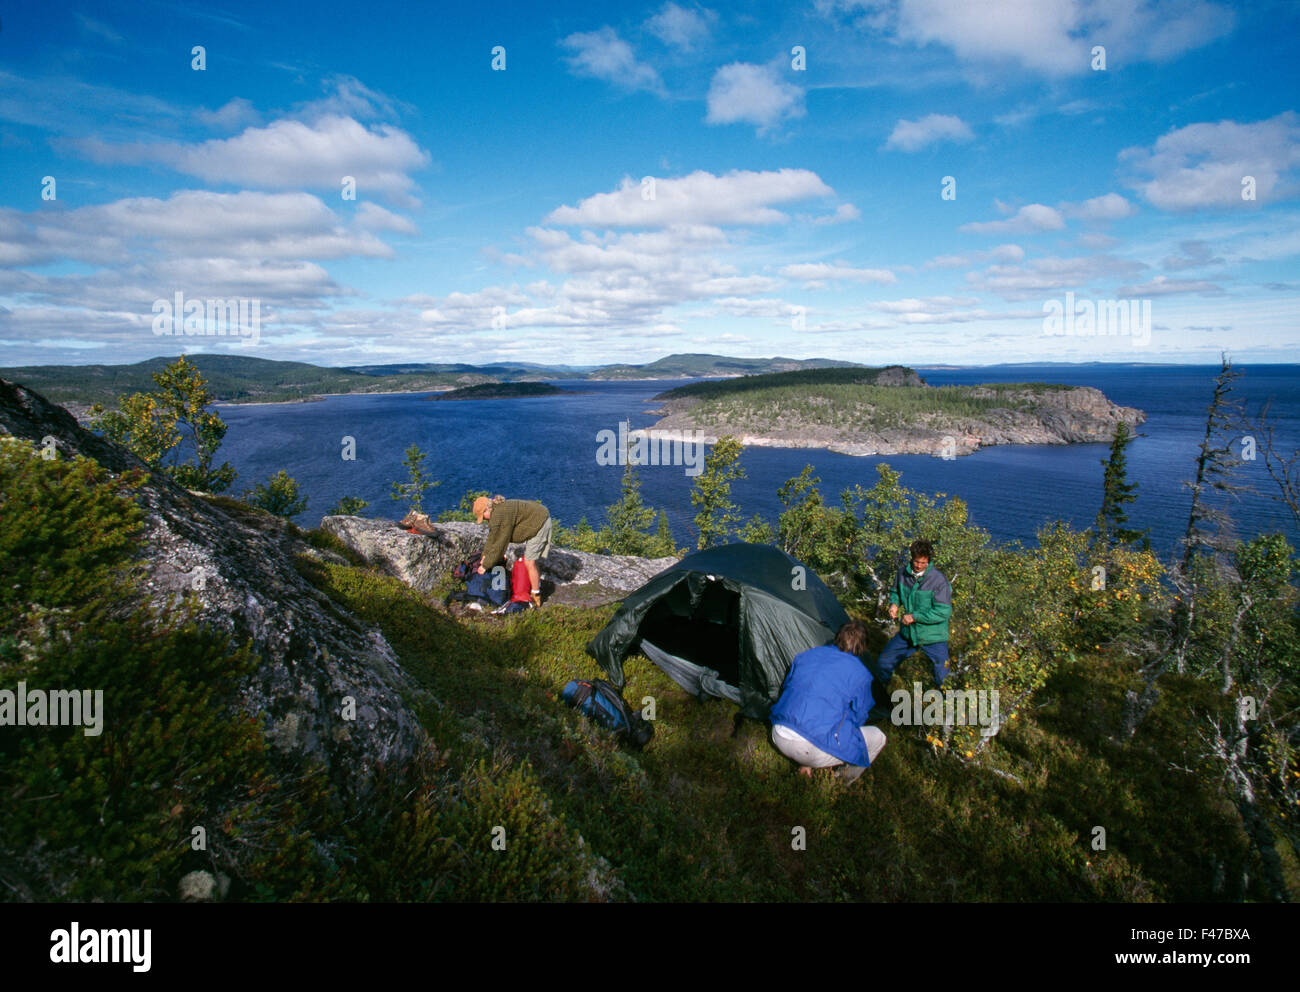 Campers with tent, Angermanland, Sweden. - Stock Image